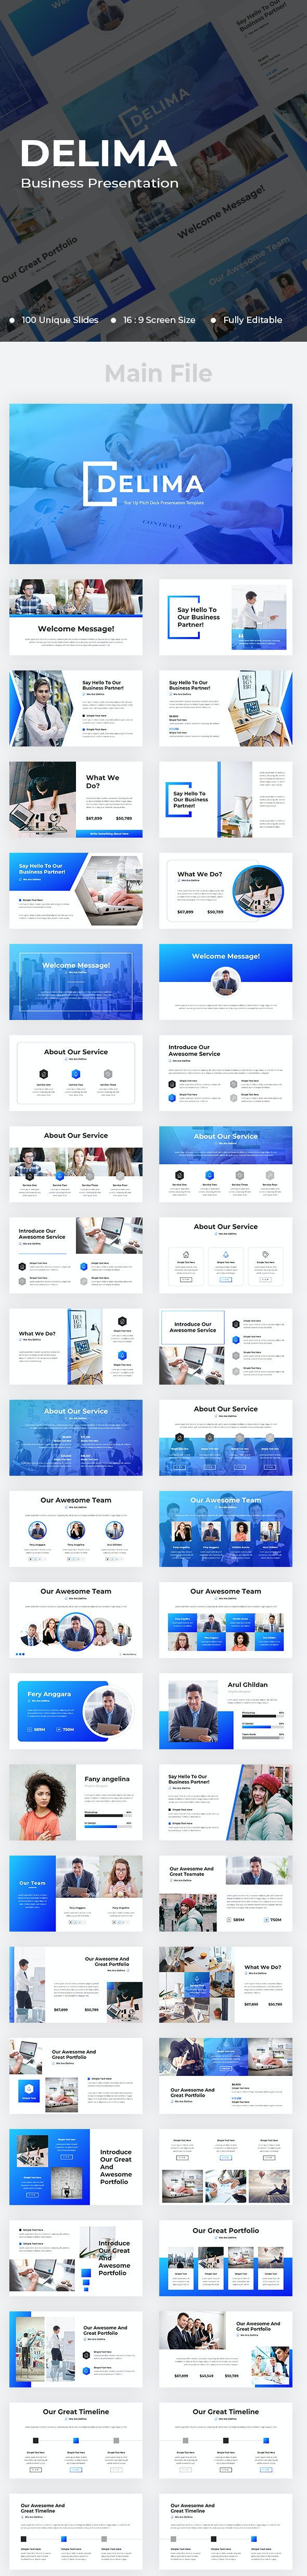 Delima Business PowerPoint - Business PowerPoint Templates